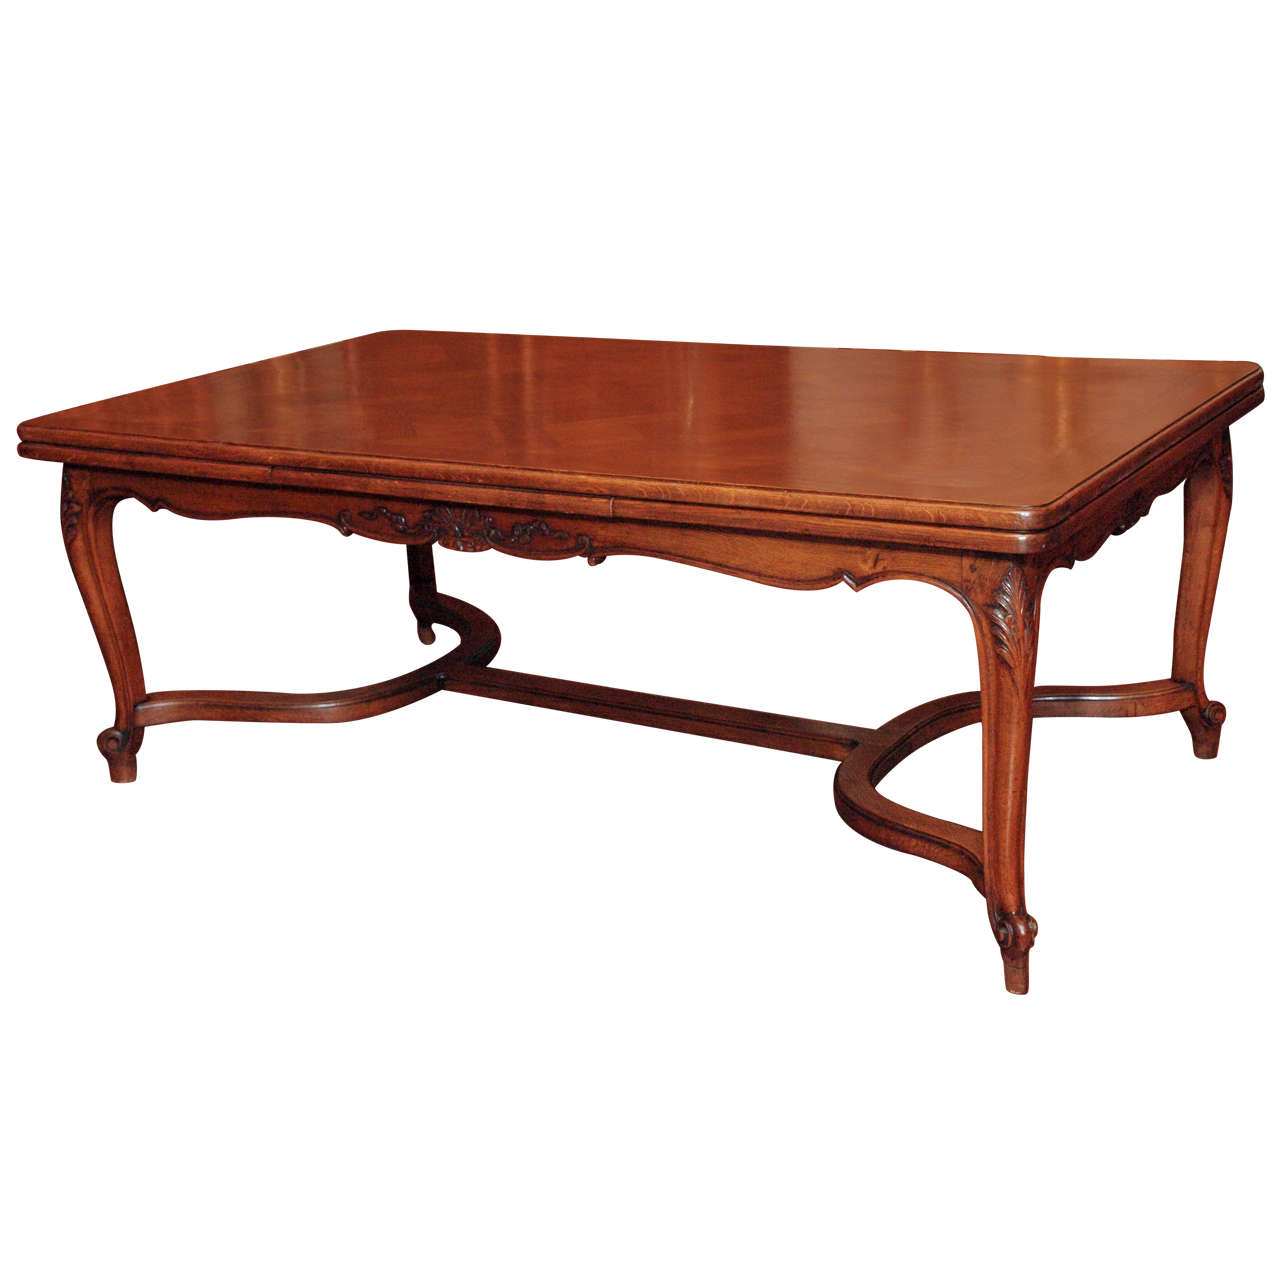 Antique French Oak Dining Table With End Leaves At 1stdibs. Full resolution  img, nominally Width 1280 Height 1280 pixels, img with #A14B2A.